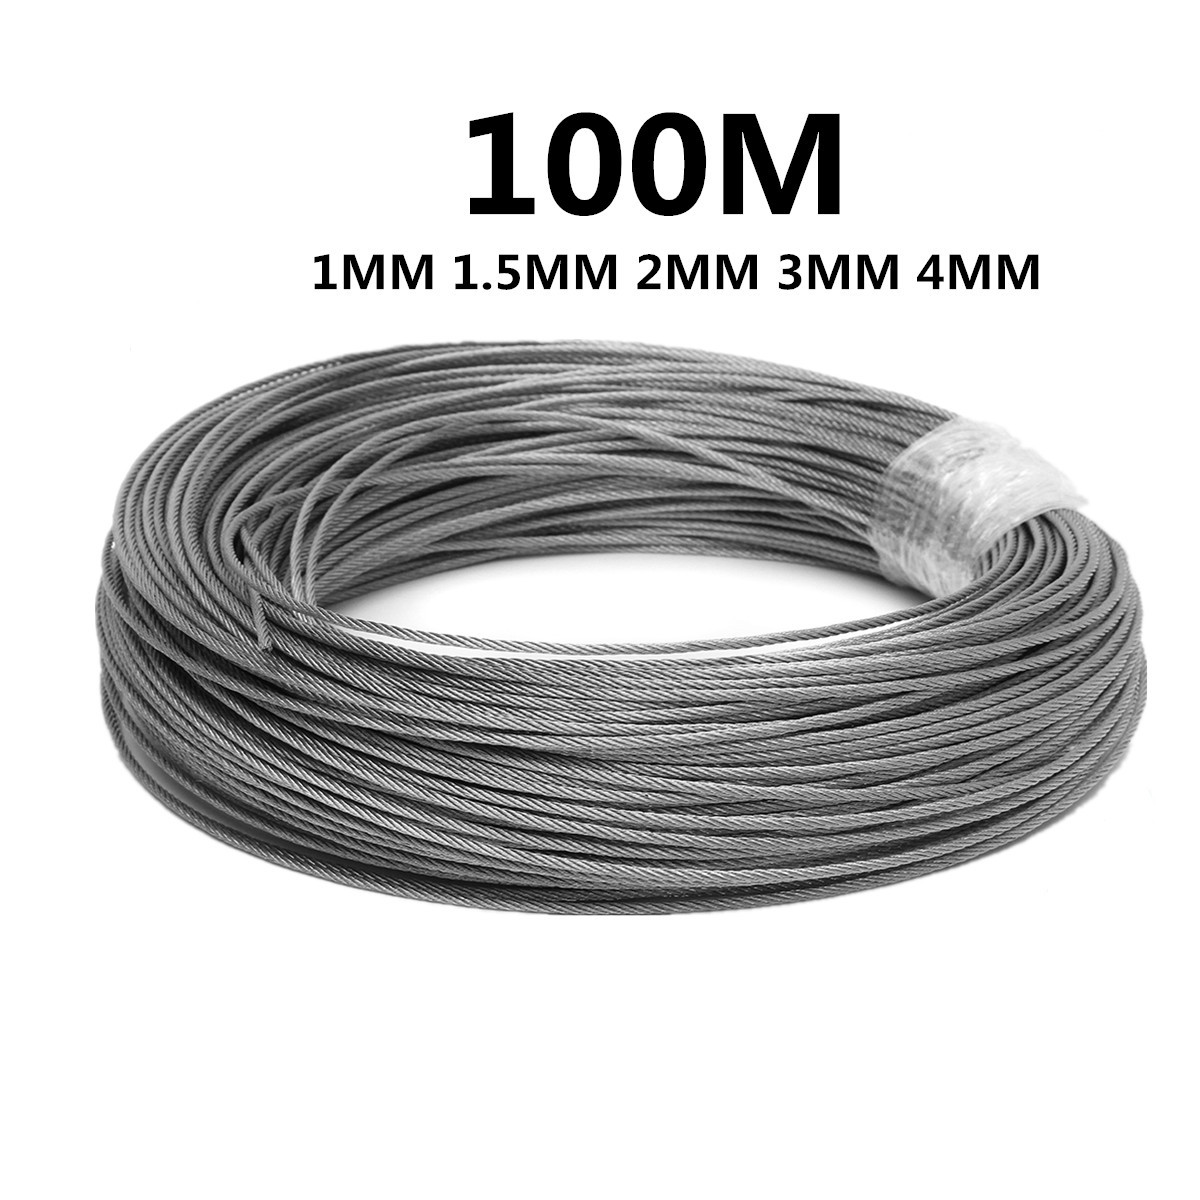 100M 50M304 Stainless Steel 1mm 1 5mm 2mm Diameter Steel Wire bare Rope lifting Cable line Clothesline Rustproof 7X7